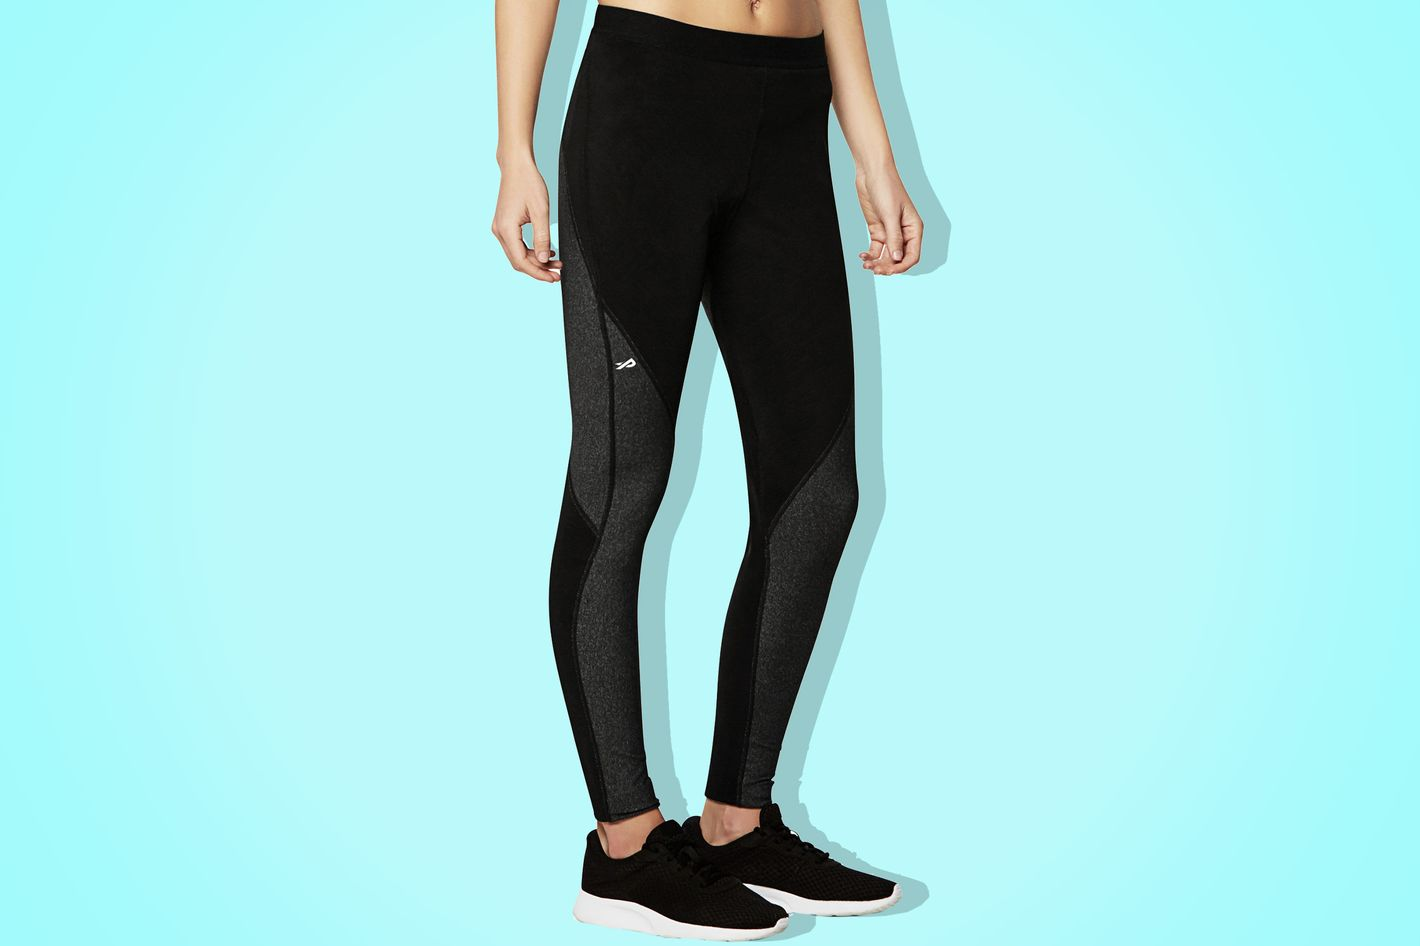 physiclo pro resistance tights in black - strategist best fitness gear and best resistance leggings for women